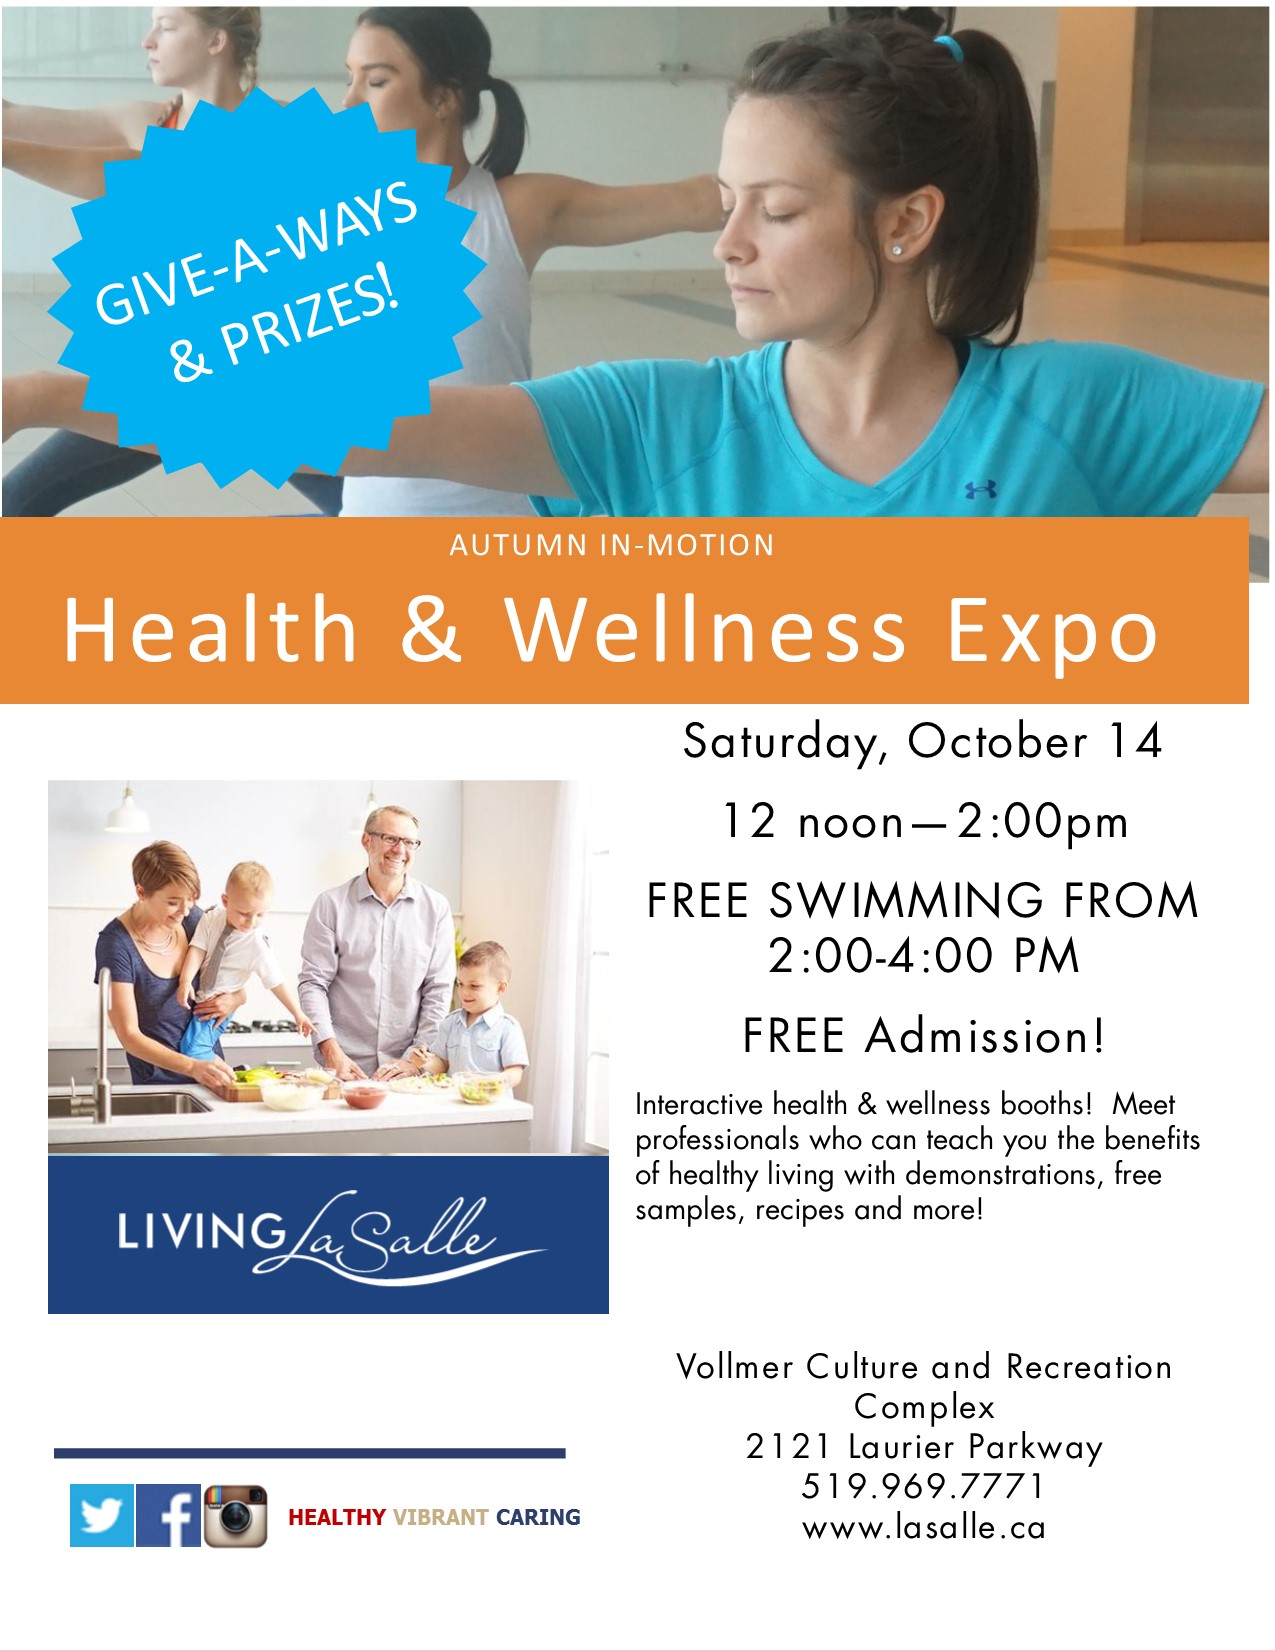 Health & Wellness Fair Flyer